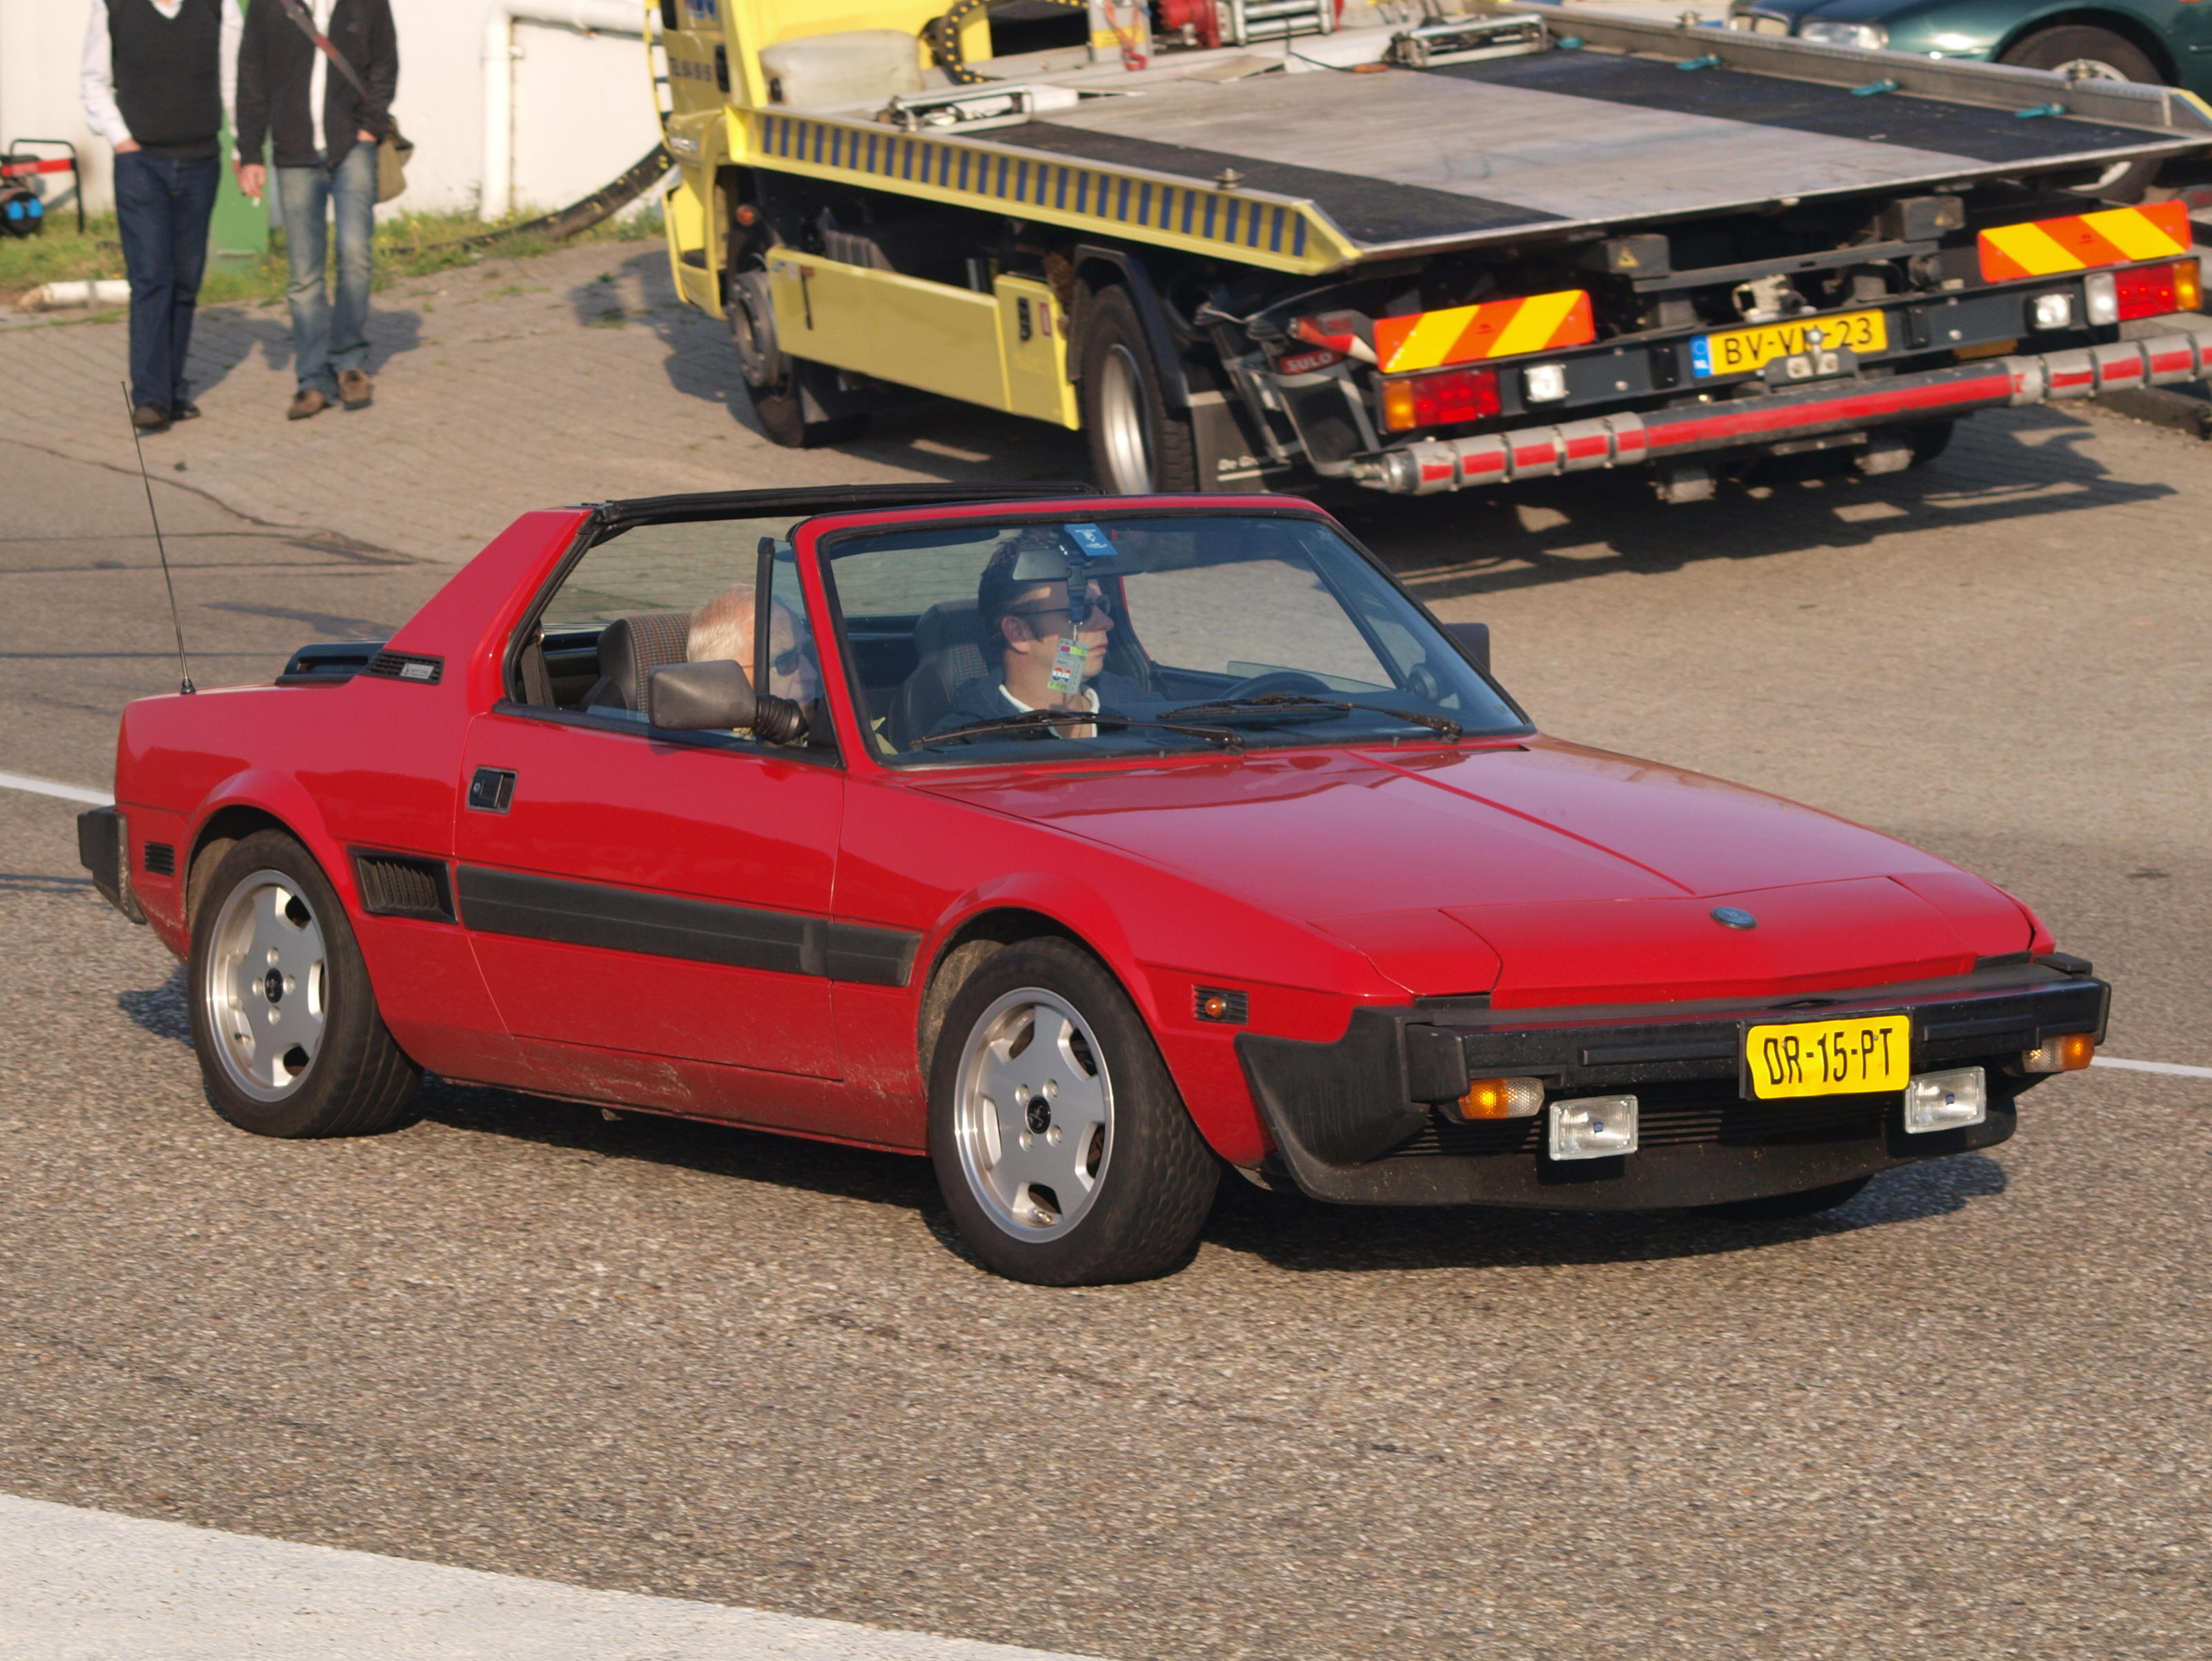 File:Fiat X 1-9 dutch licence registration DR-15-PT.JPG ...